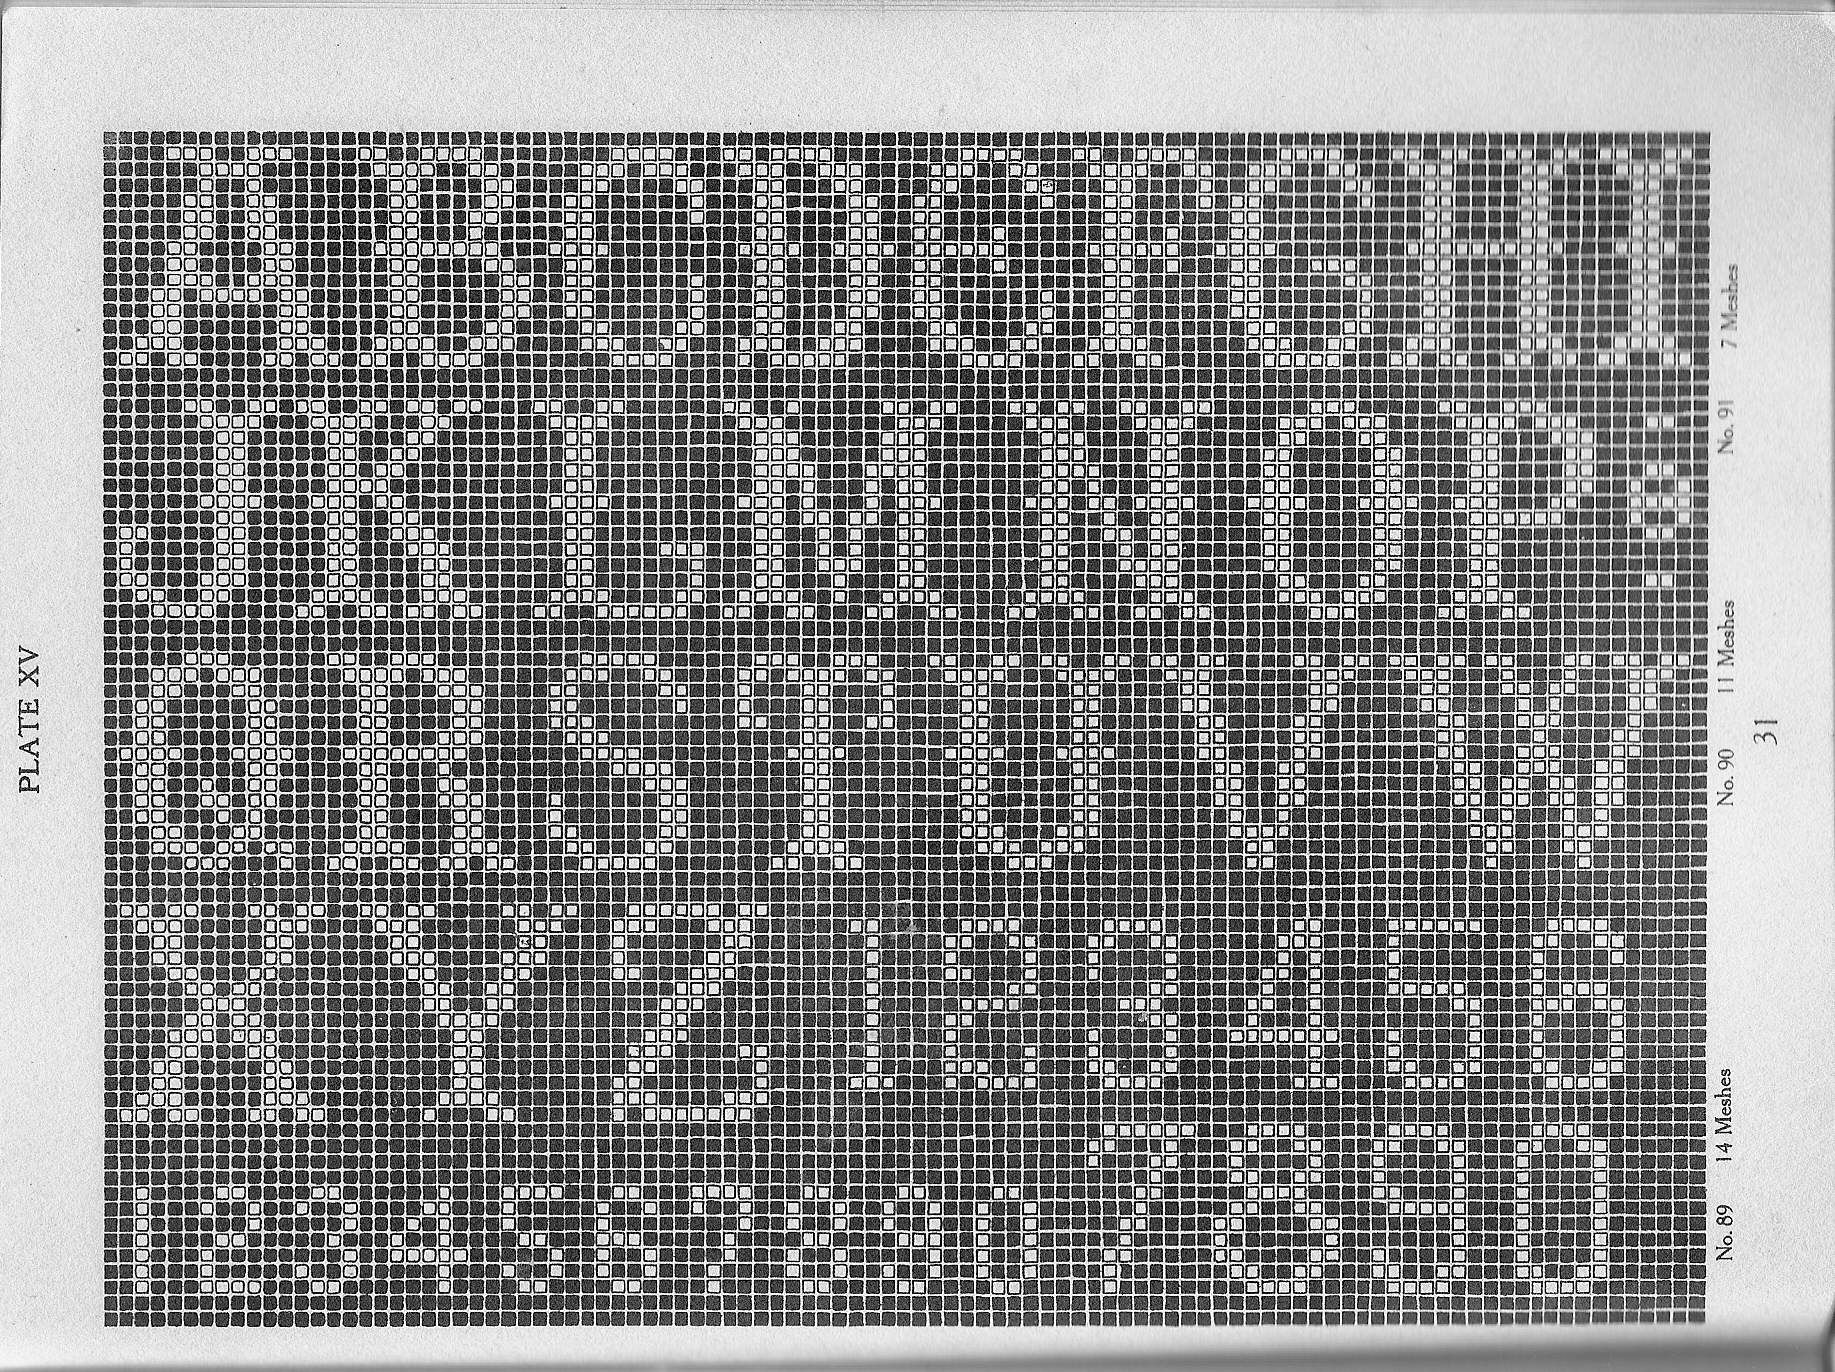 Free Filet Crochet Alphabet Charts | Free Filet Crochet Tiger Graph ...